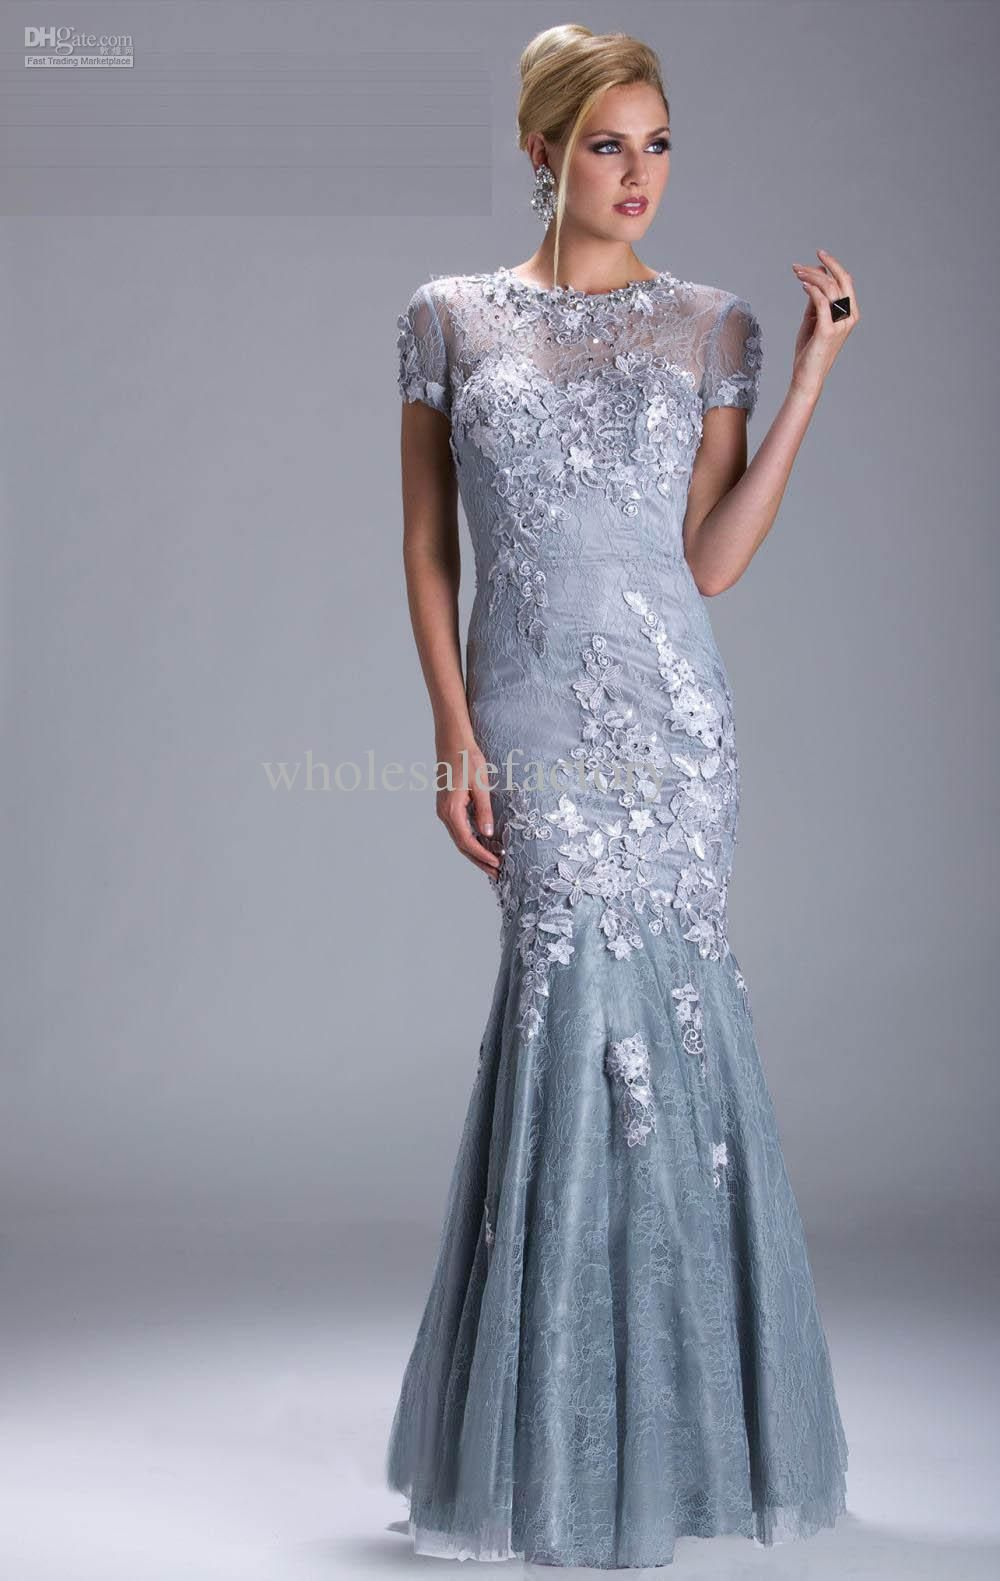 Wholesale Mother of the Bride Dresses - Buy Baby Blue Short Sleeved ...